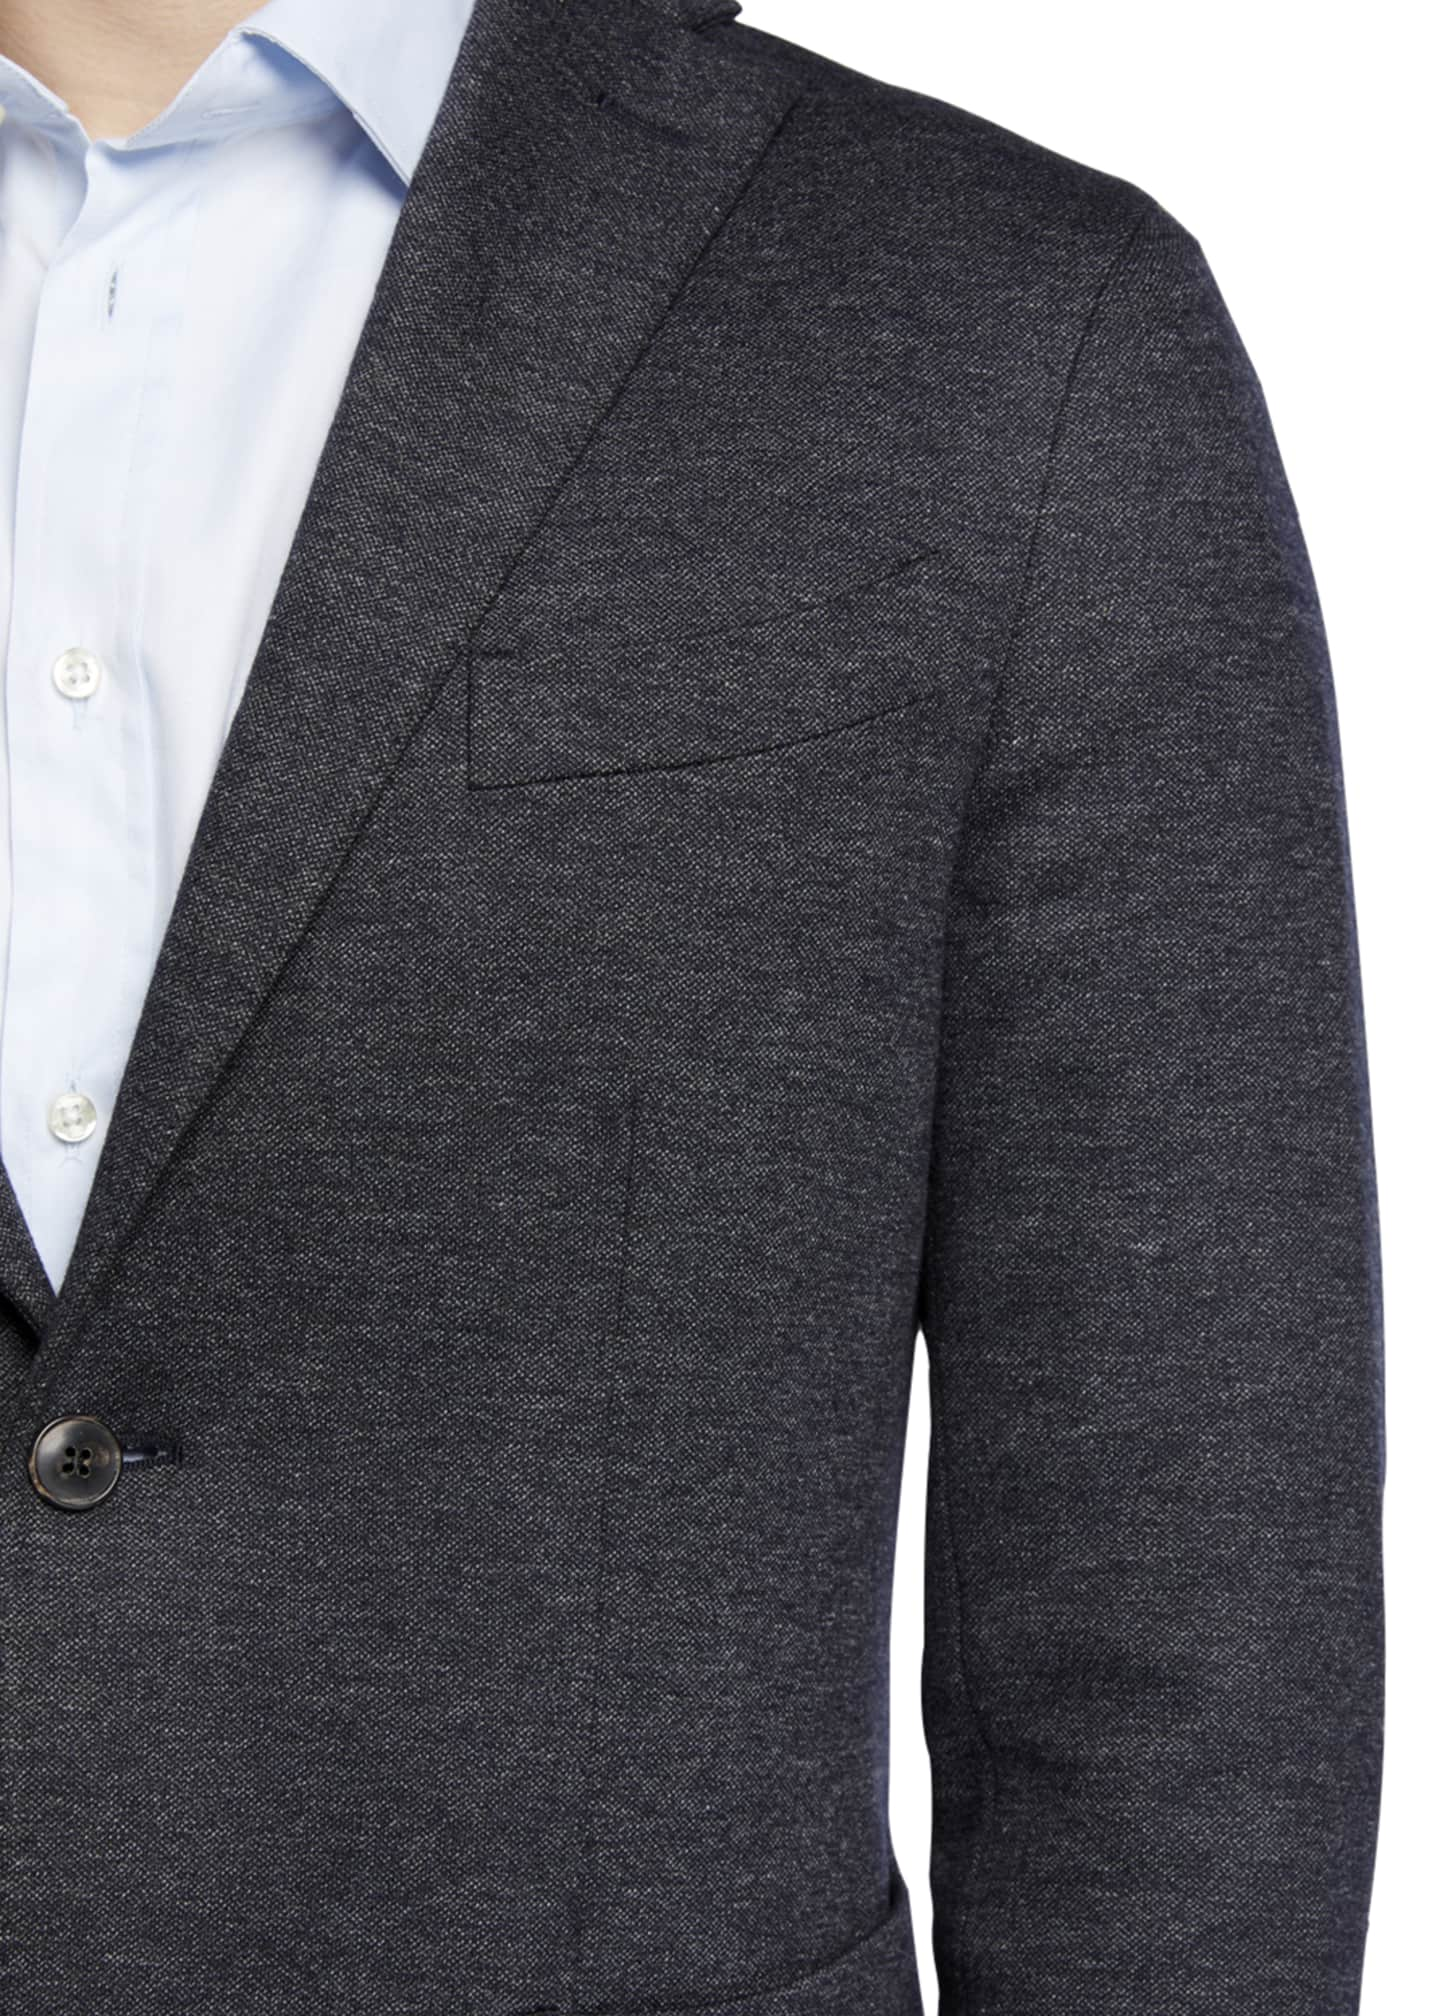 Image 4 of 4: Men's Heathered Jersey Two-Piece Suit